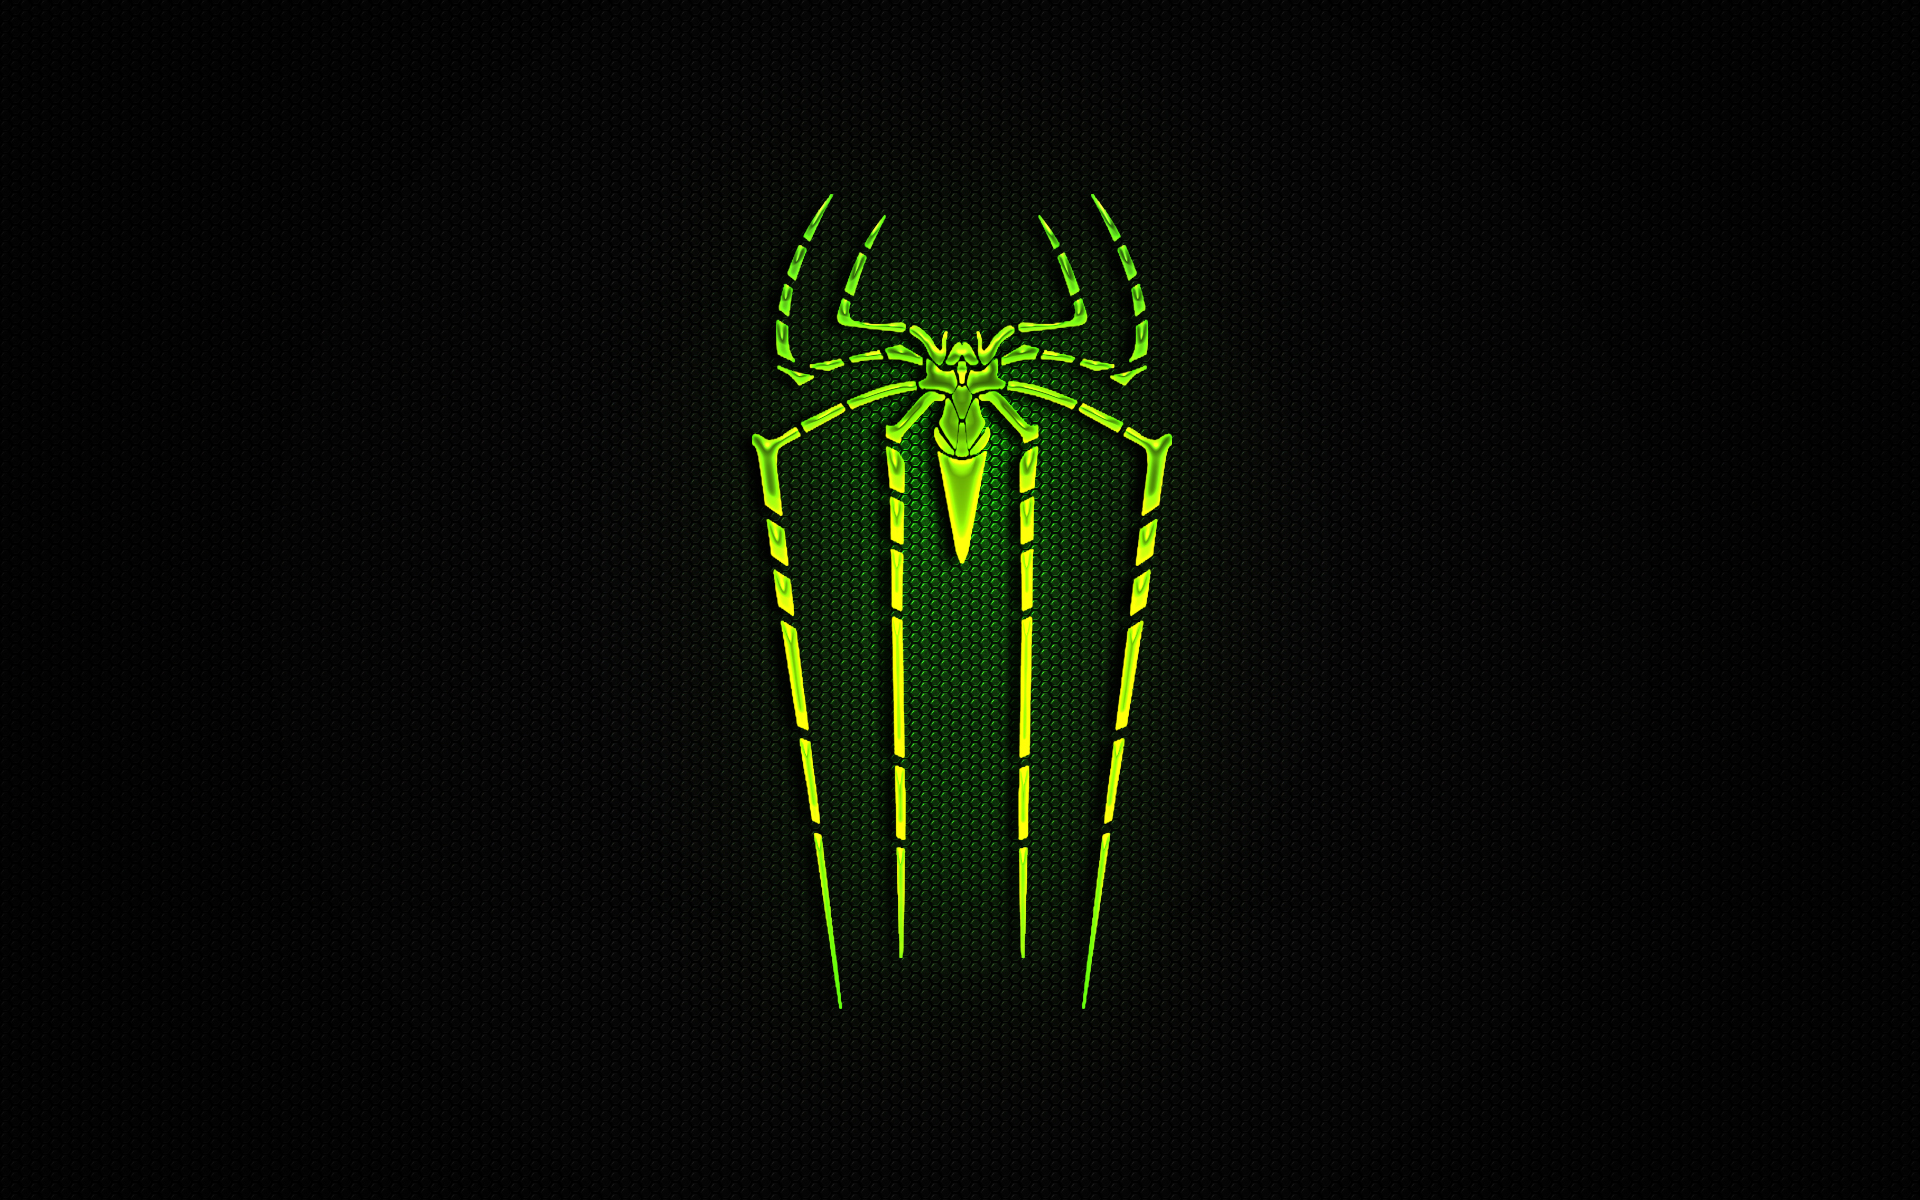 Spiderman HD Wallpapers A3